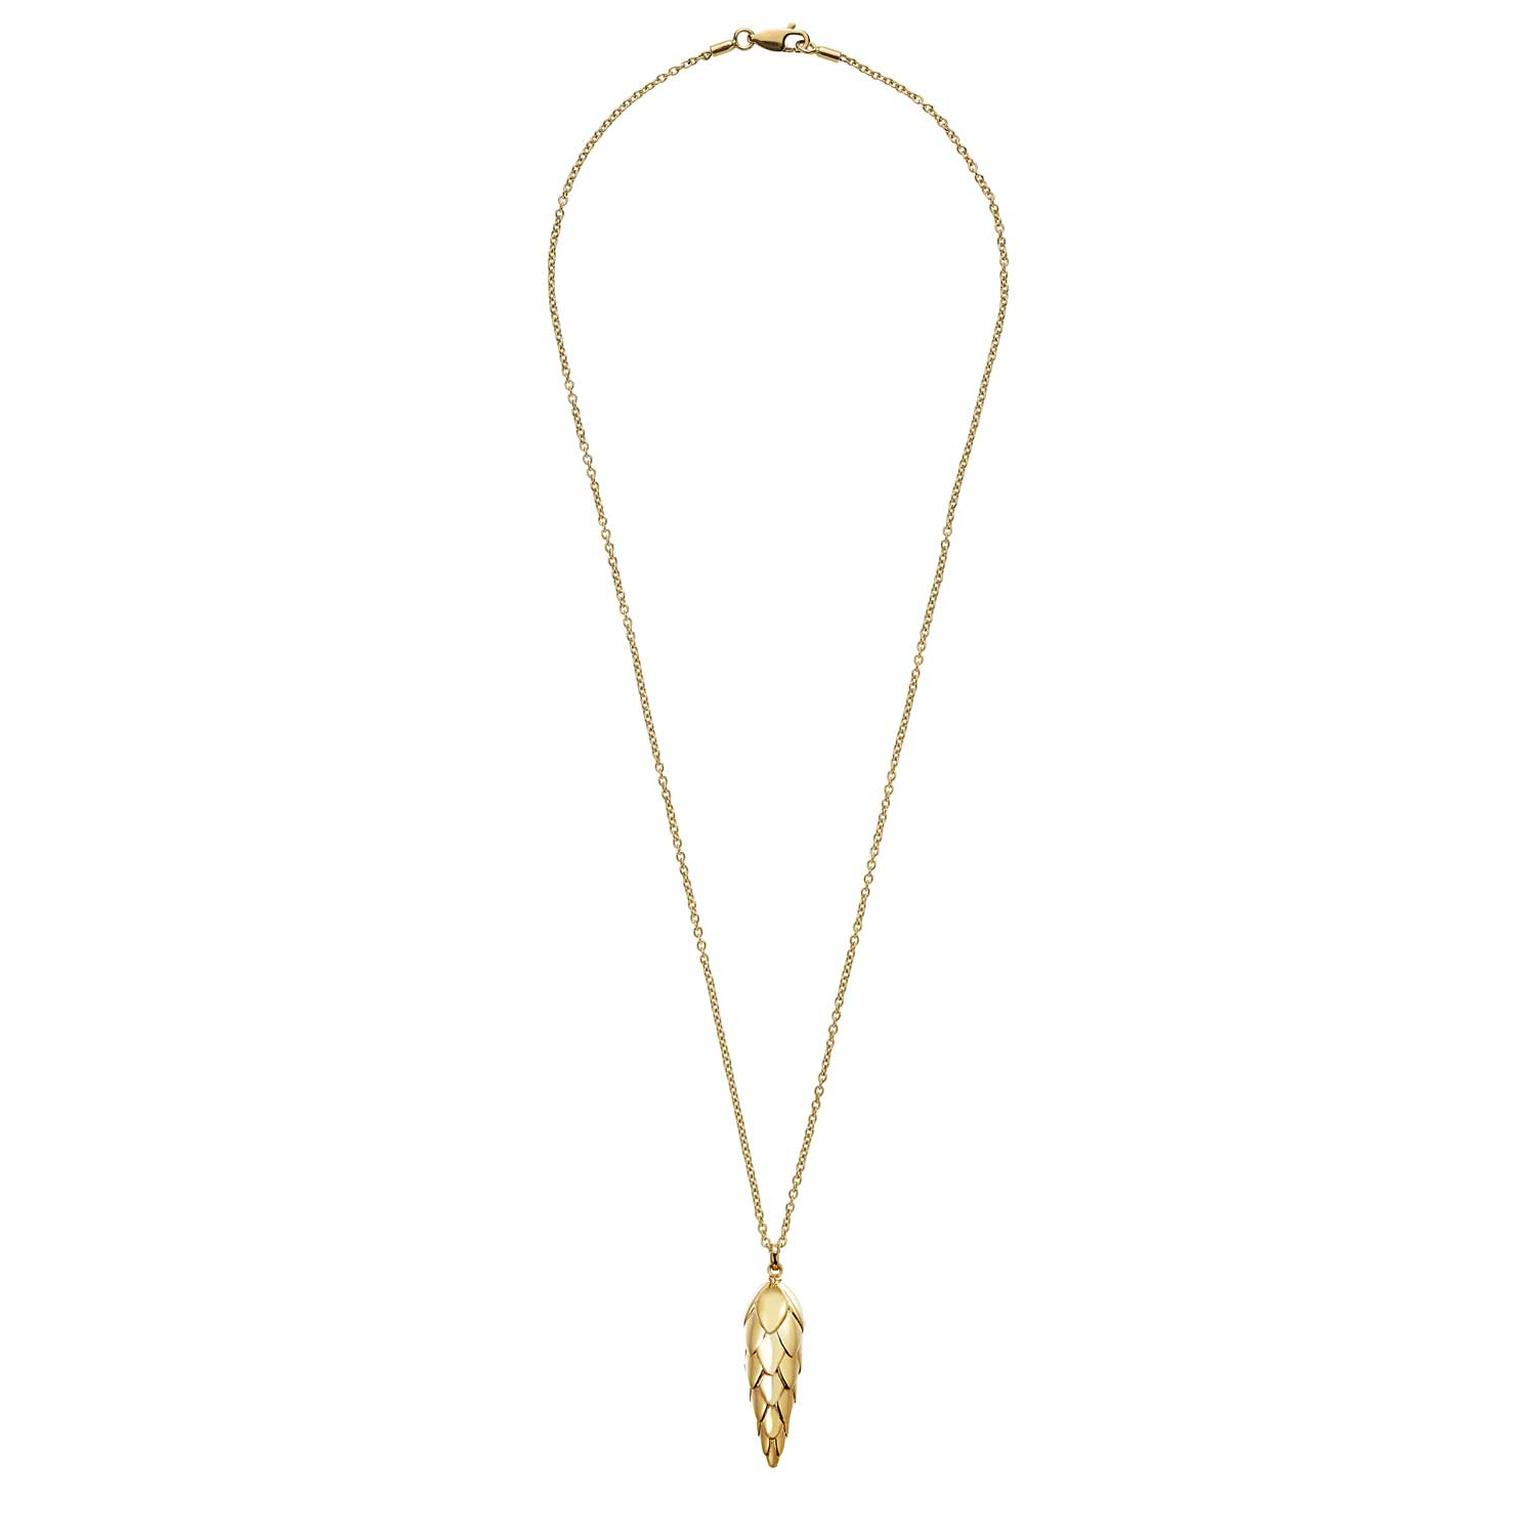 Patrick Mavros Pangolin Scale large pendant necklace in gold